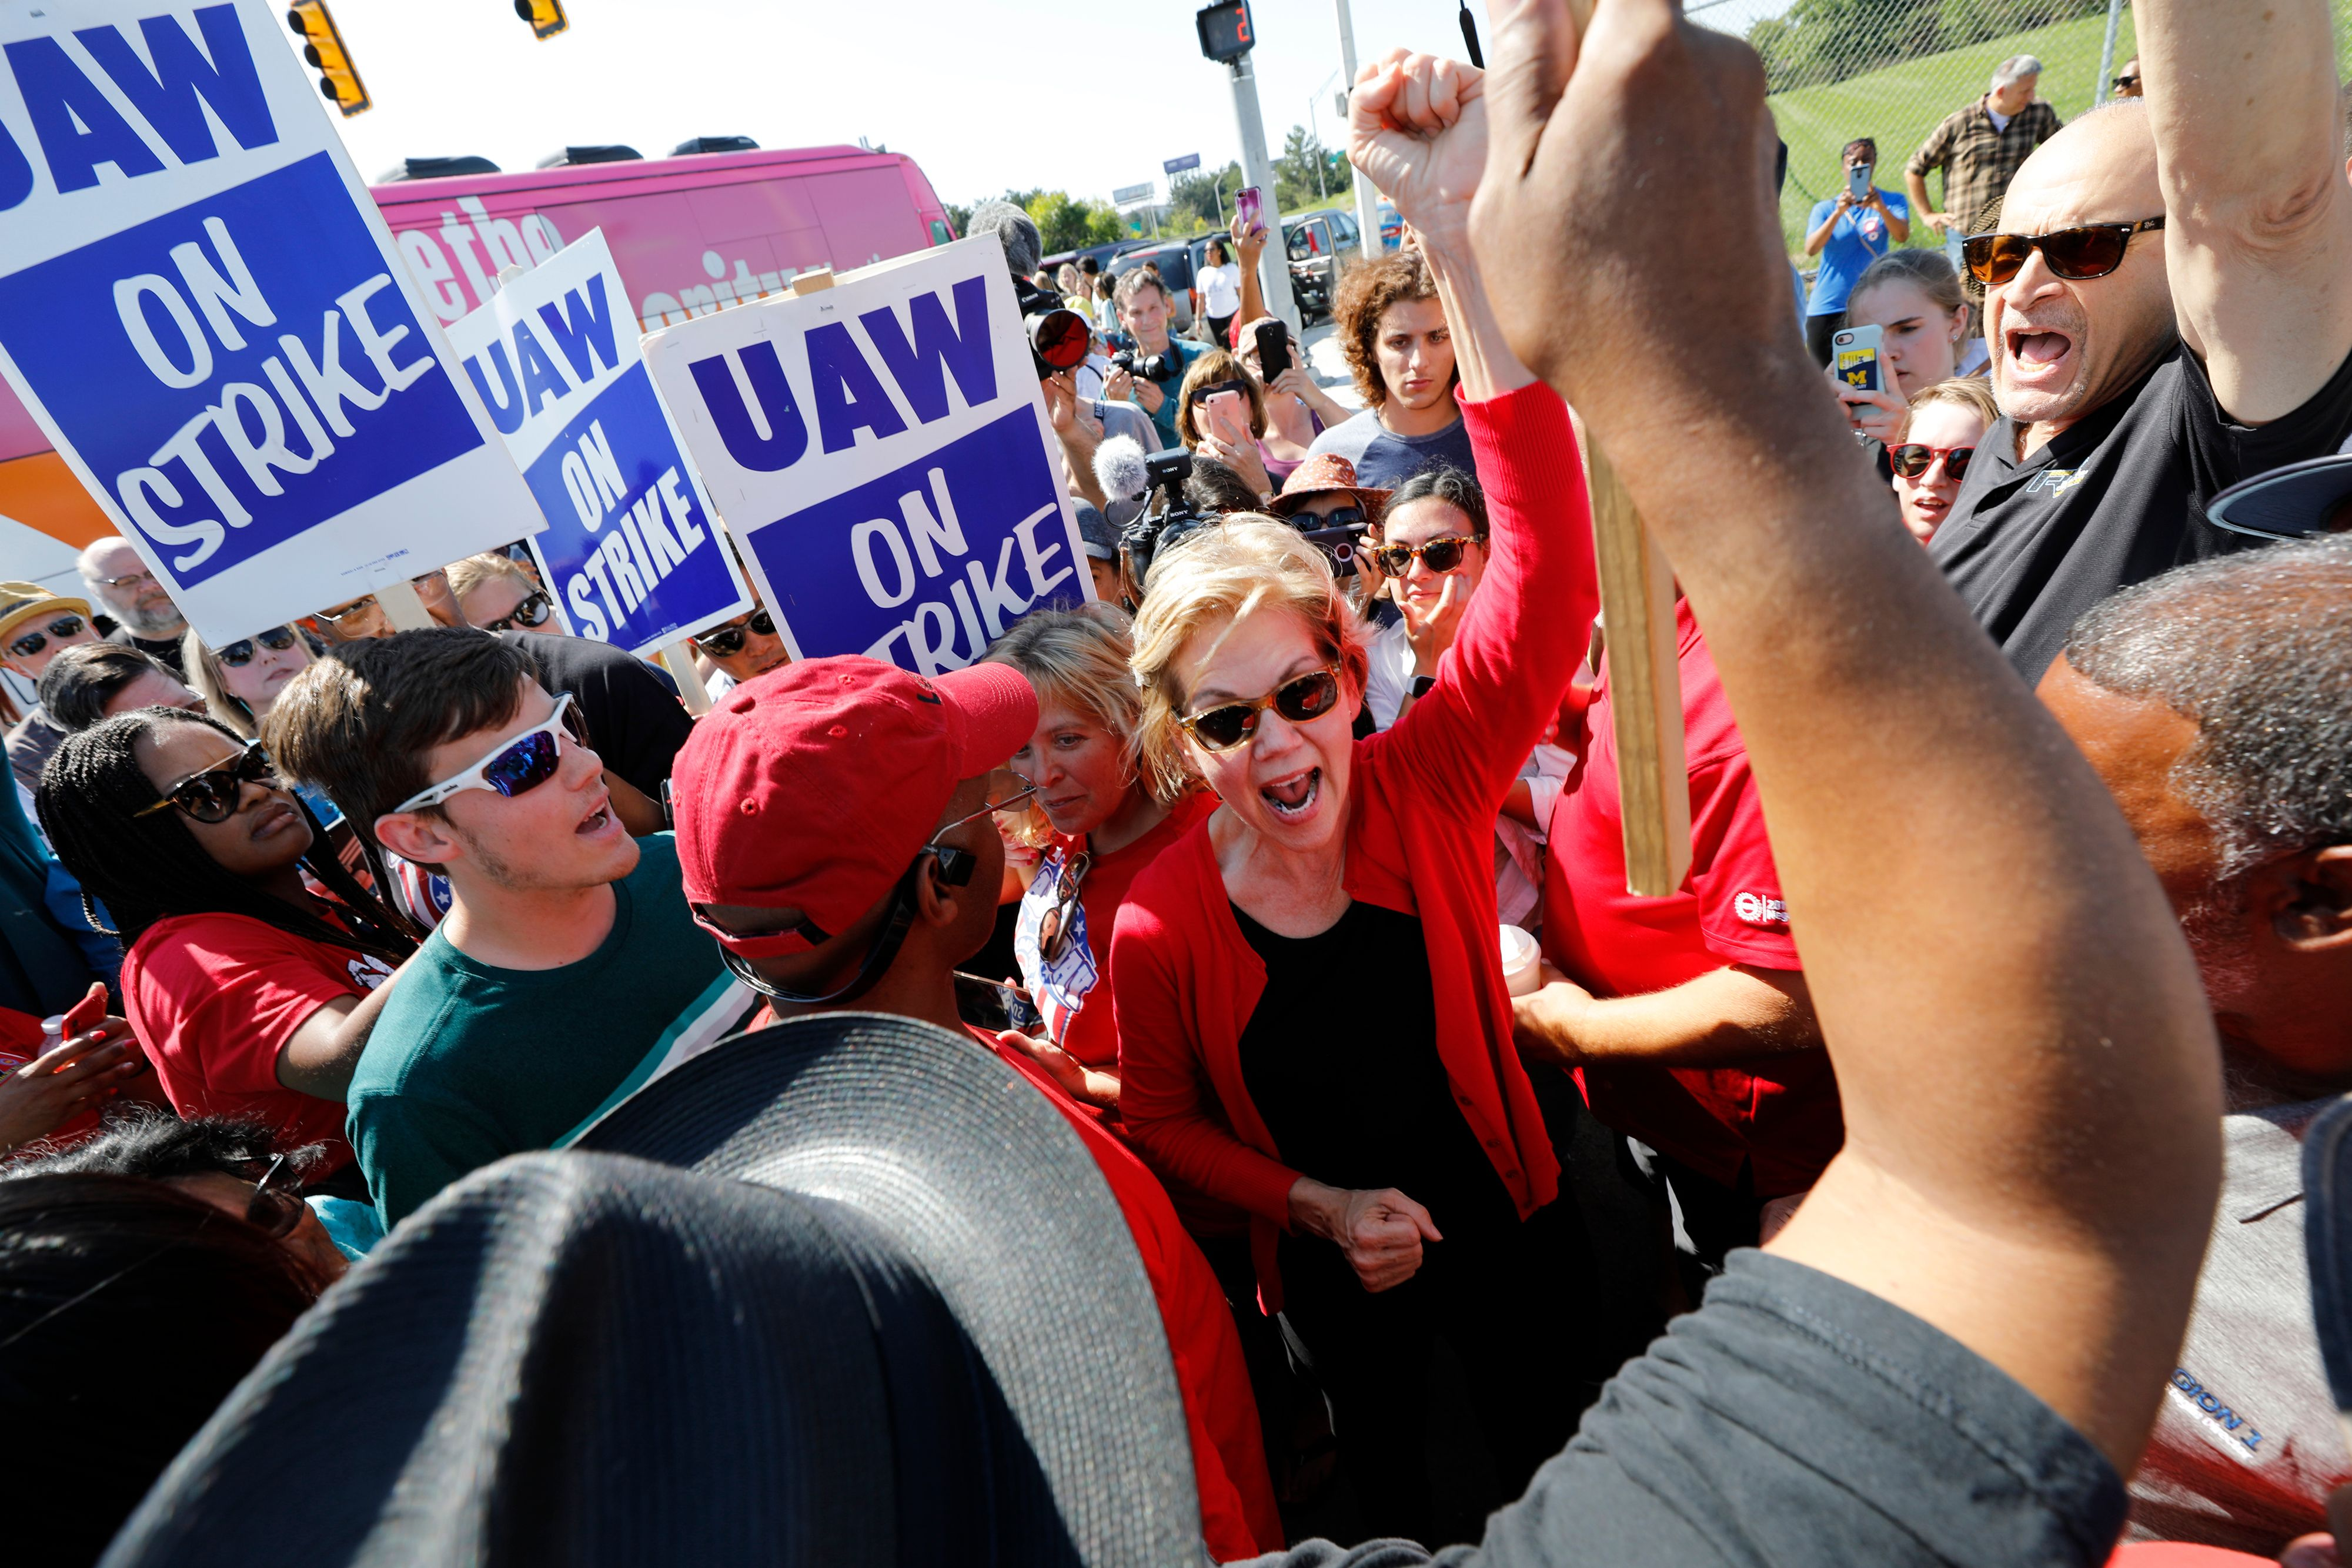 Elizabeth Warren raises her fist in the air while GM workers swarm around her carrying picket signs.